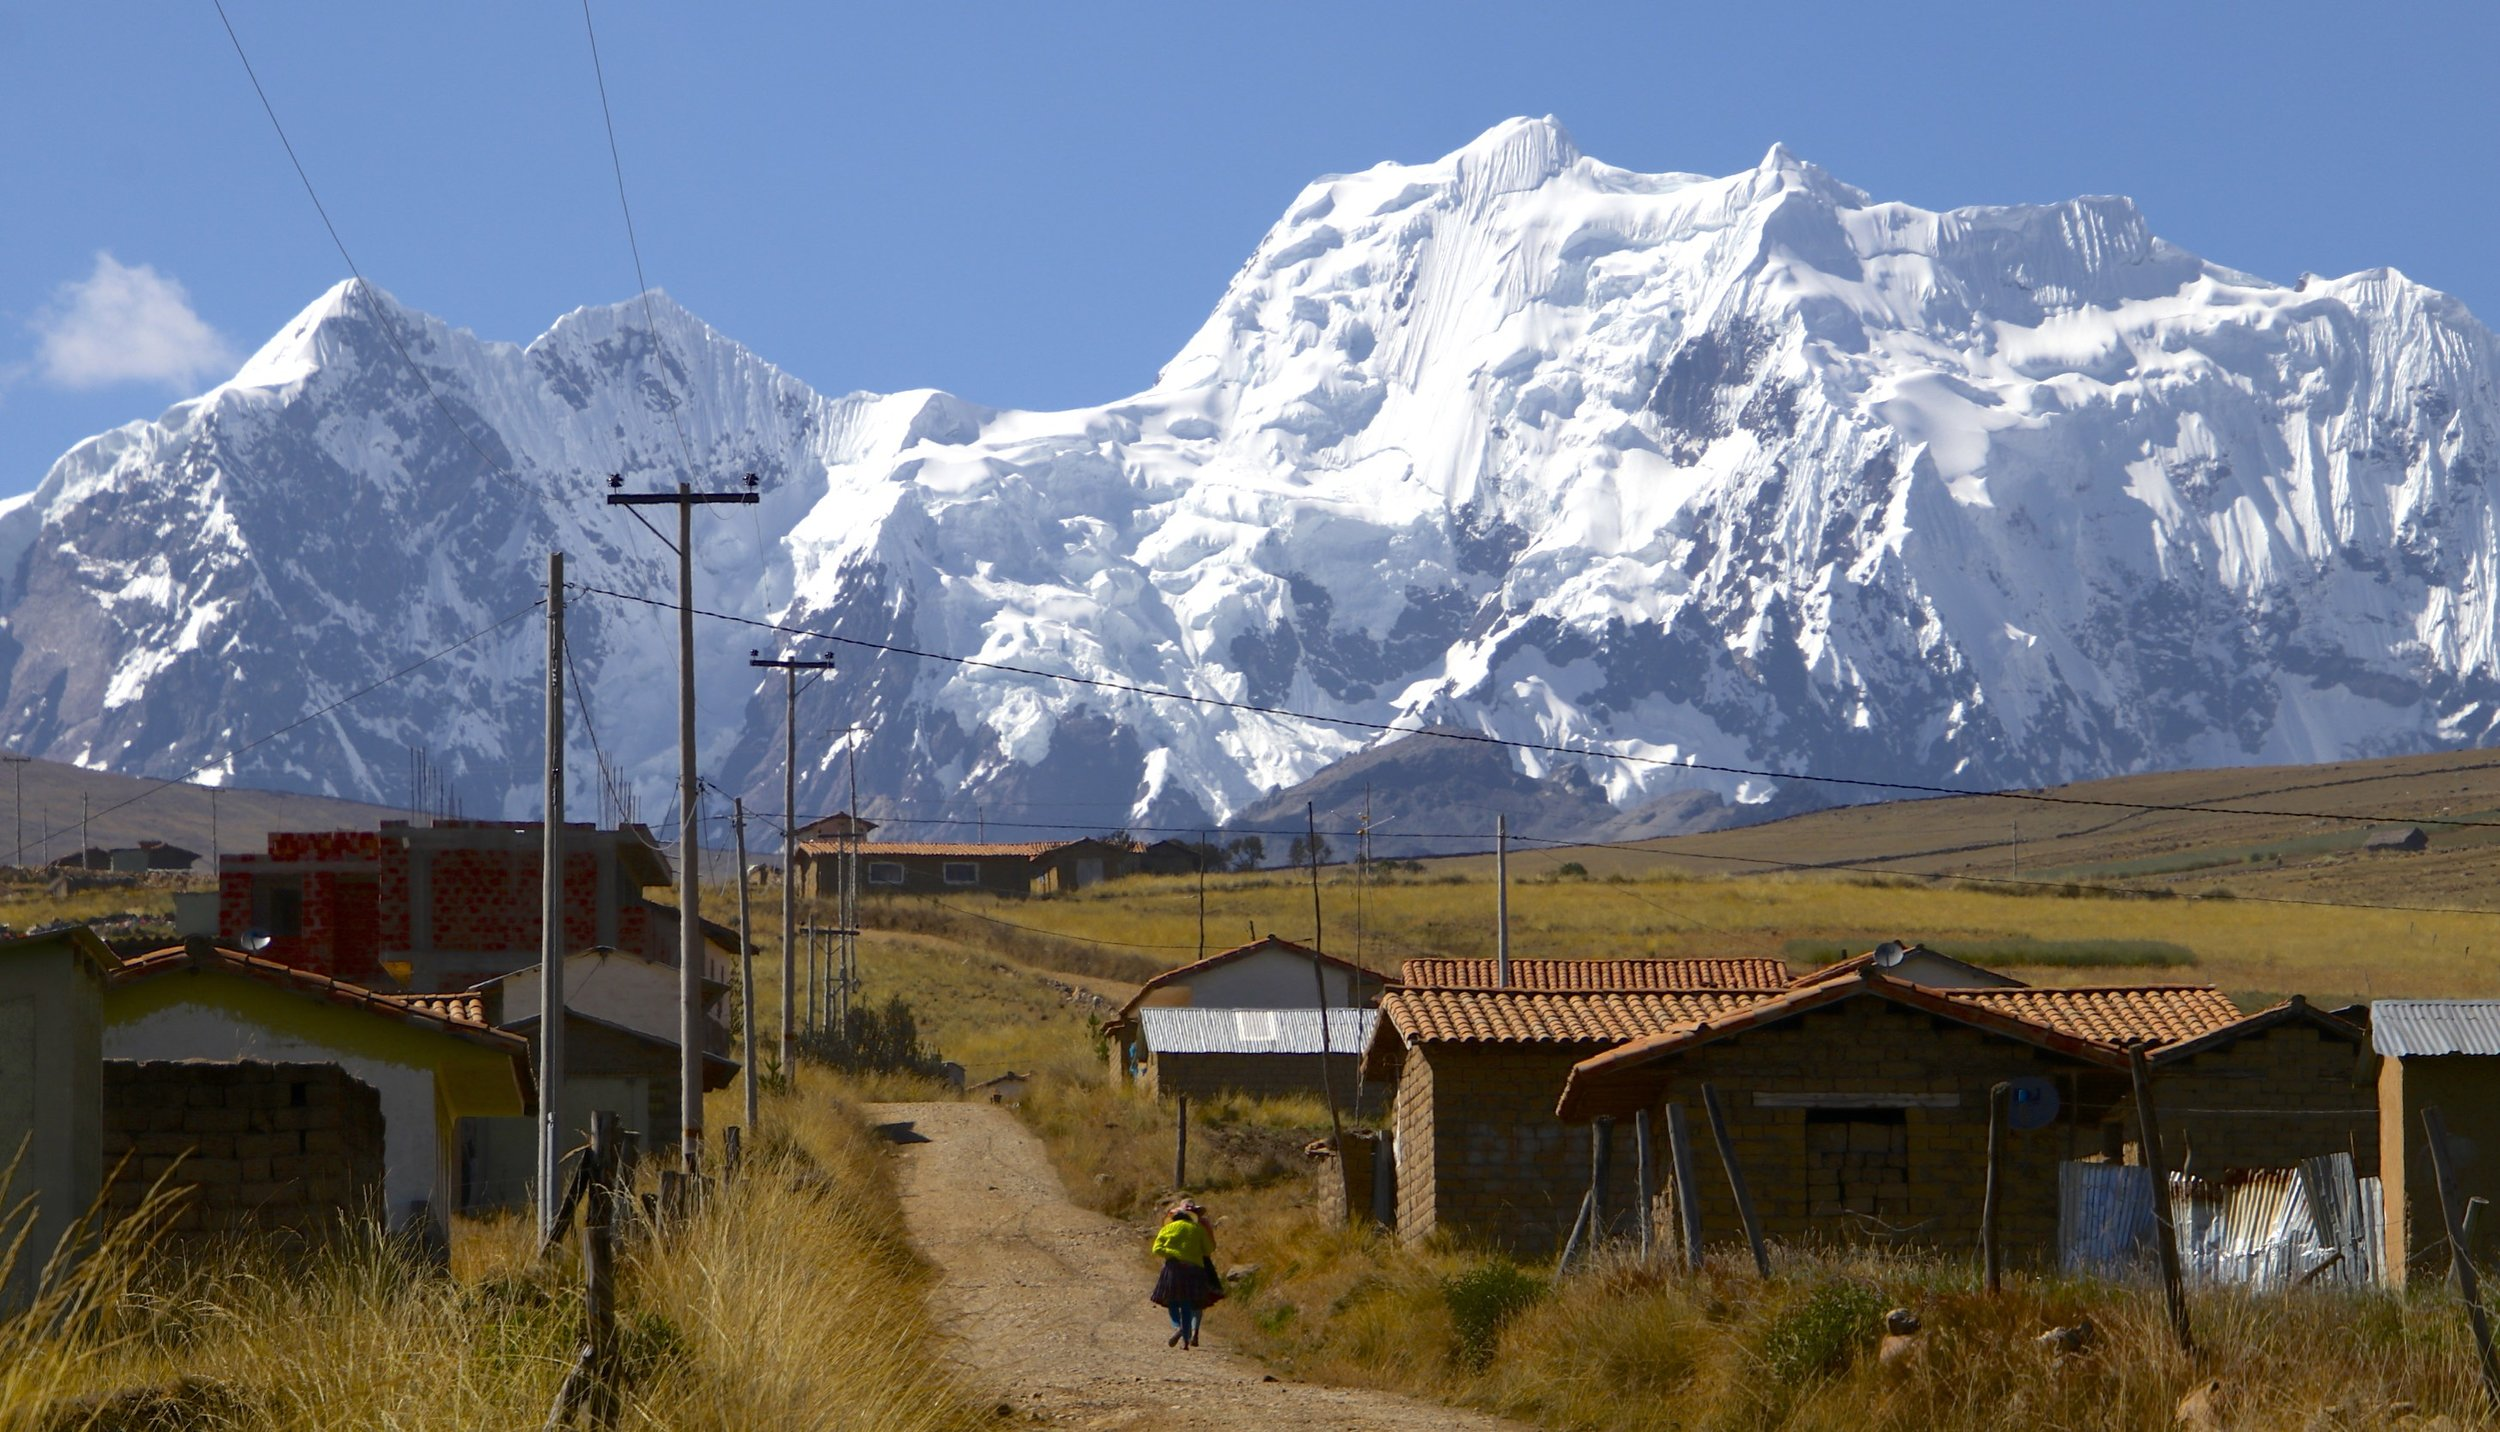 The lower slopes of the Vilcanota Range are inhabited by the Quechua people. Their traditions are very colourful and lively. They live in communes consisting of many villages. Each commune has its own laws and rules. The members do not own land or property and all the income from work or trade is shared among the people from the commune.